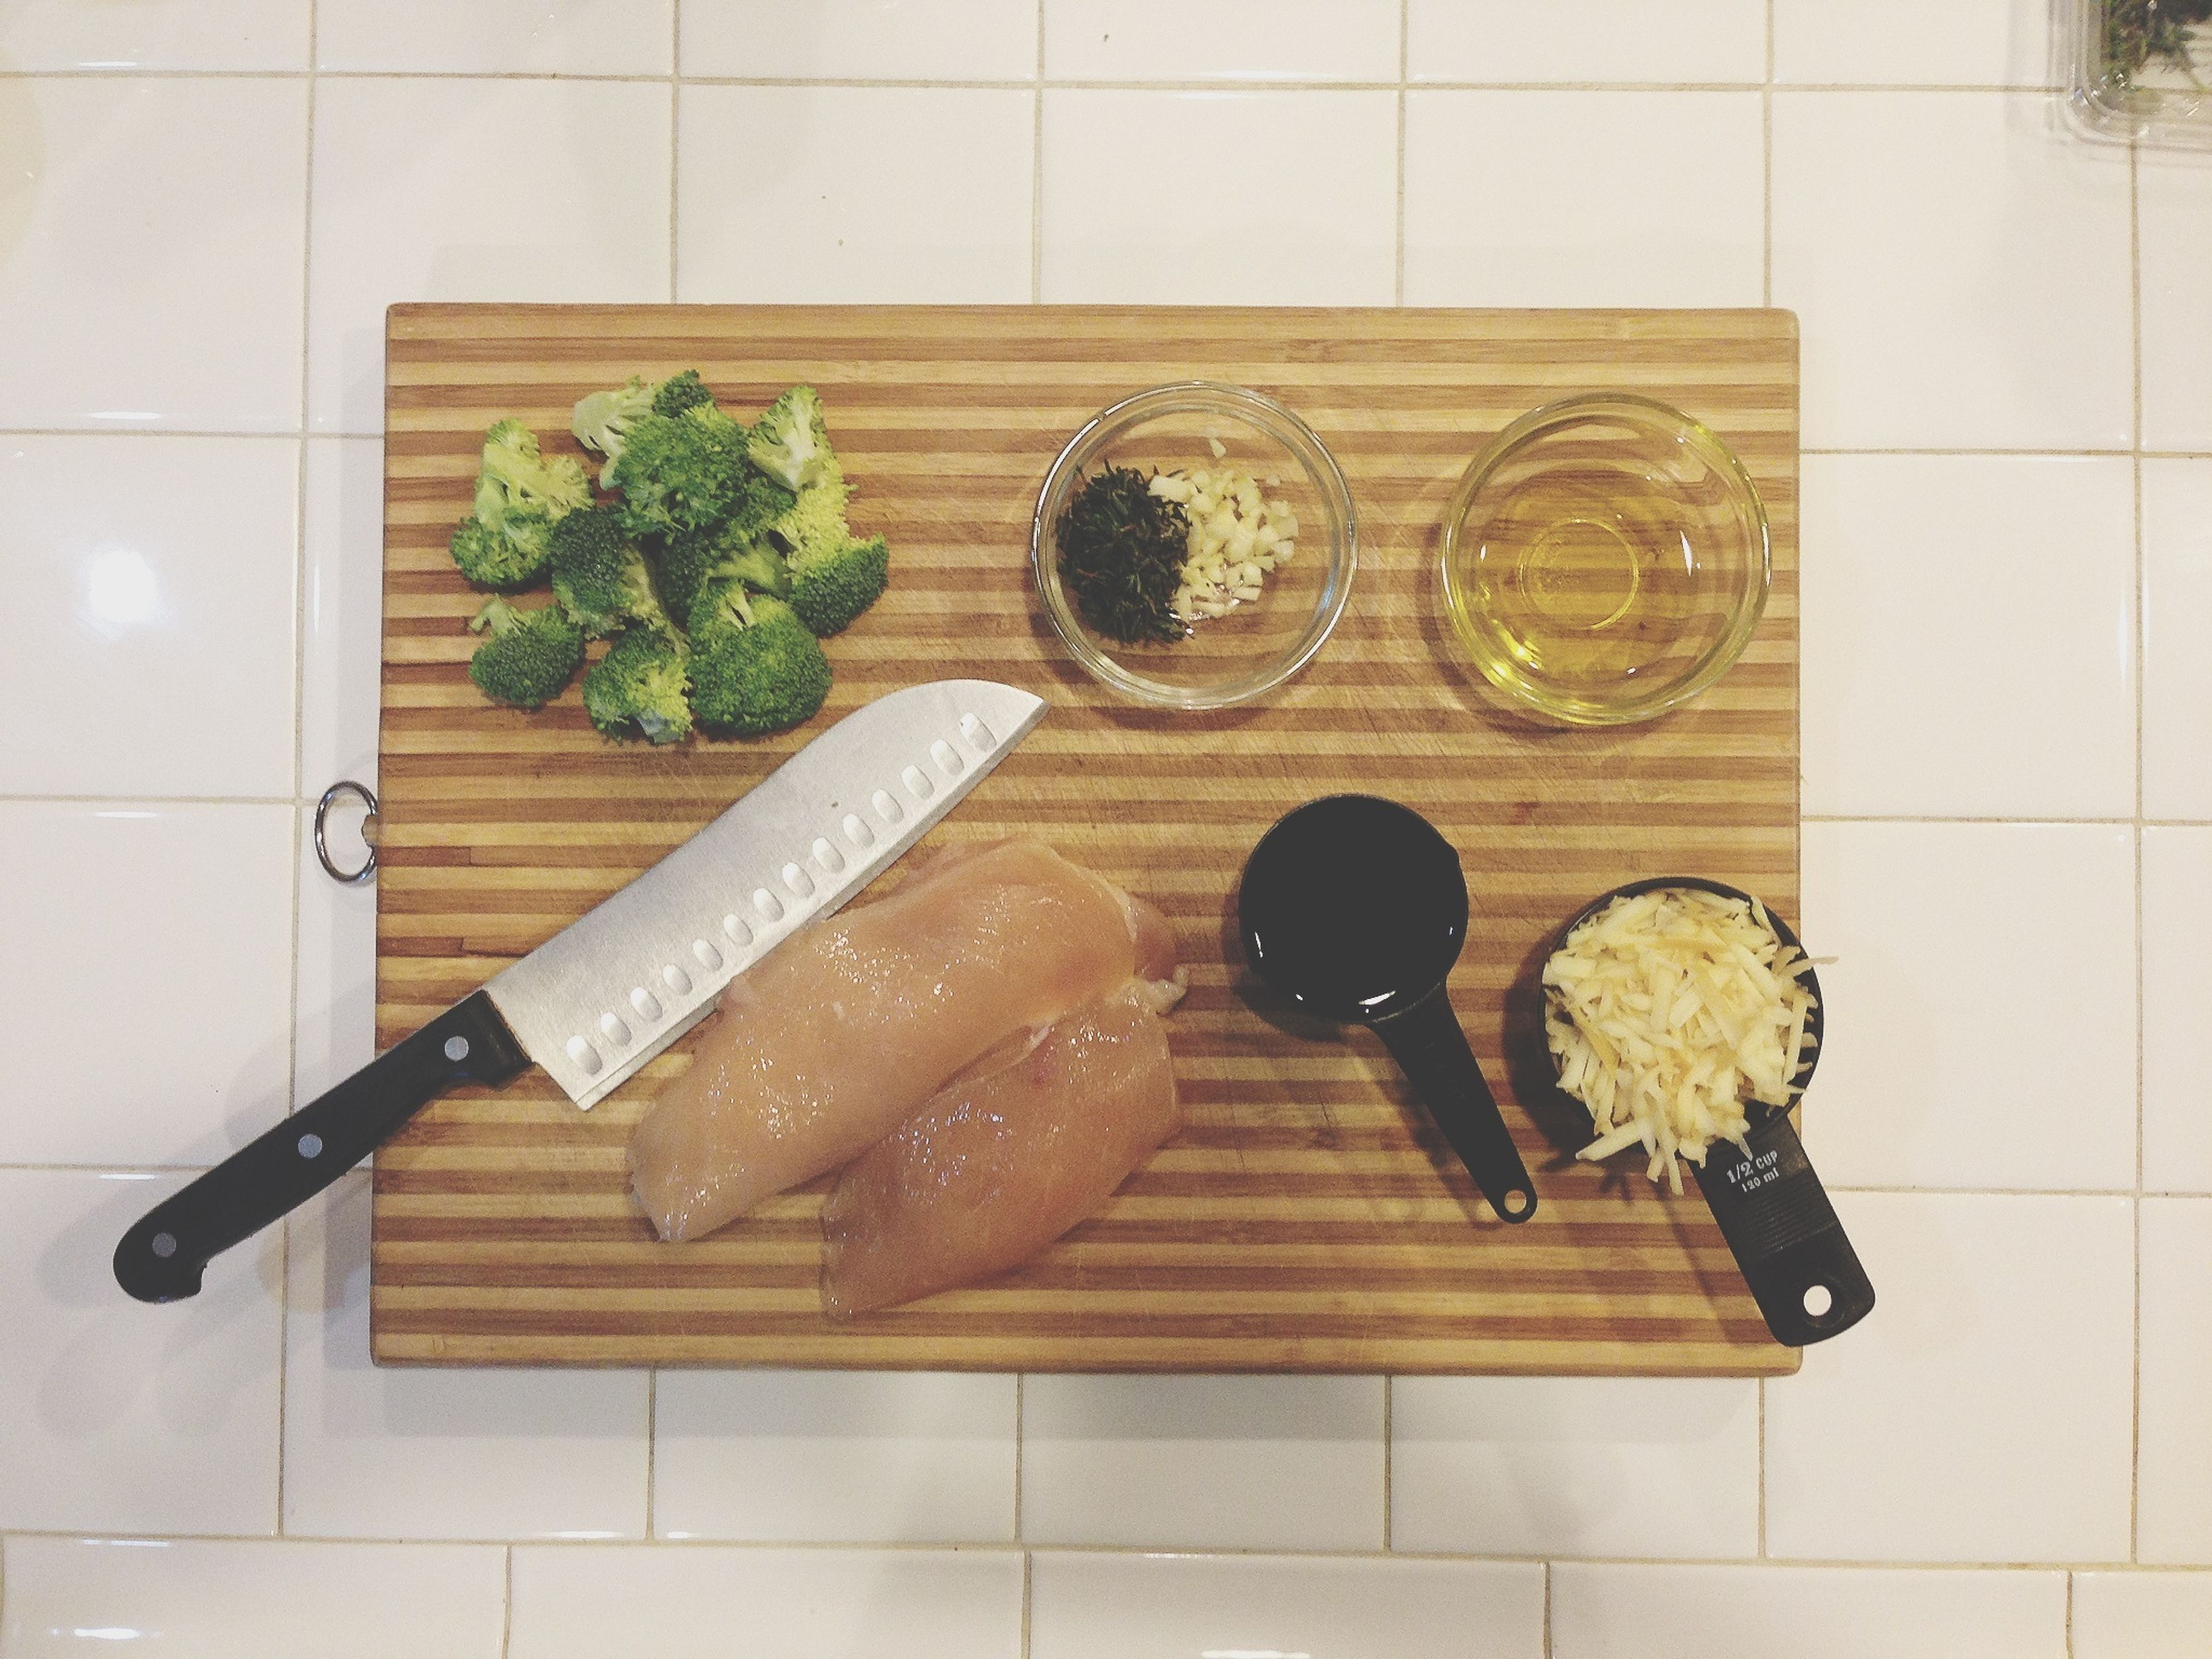 indoors, food and drink, food, freshness, table, still life, high angle view, cutting board, healthy eating, directly above, wood - material, preparation, plate, vegetable, ready-to-eat, kitchen knife, fork, bread, overhead view, meal